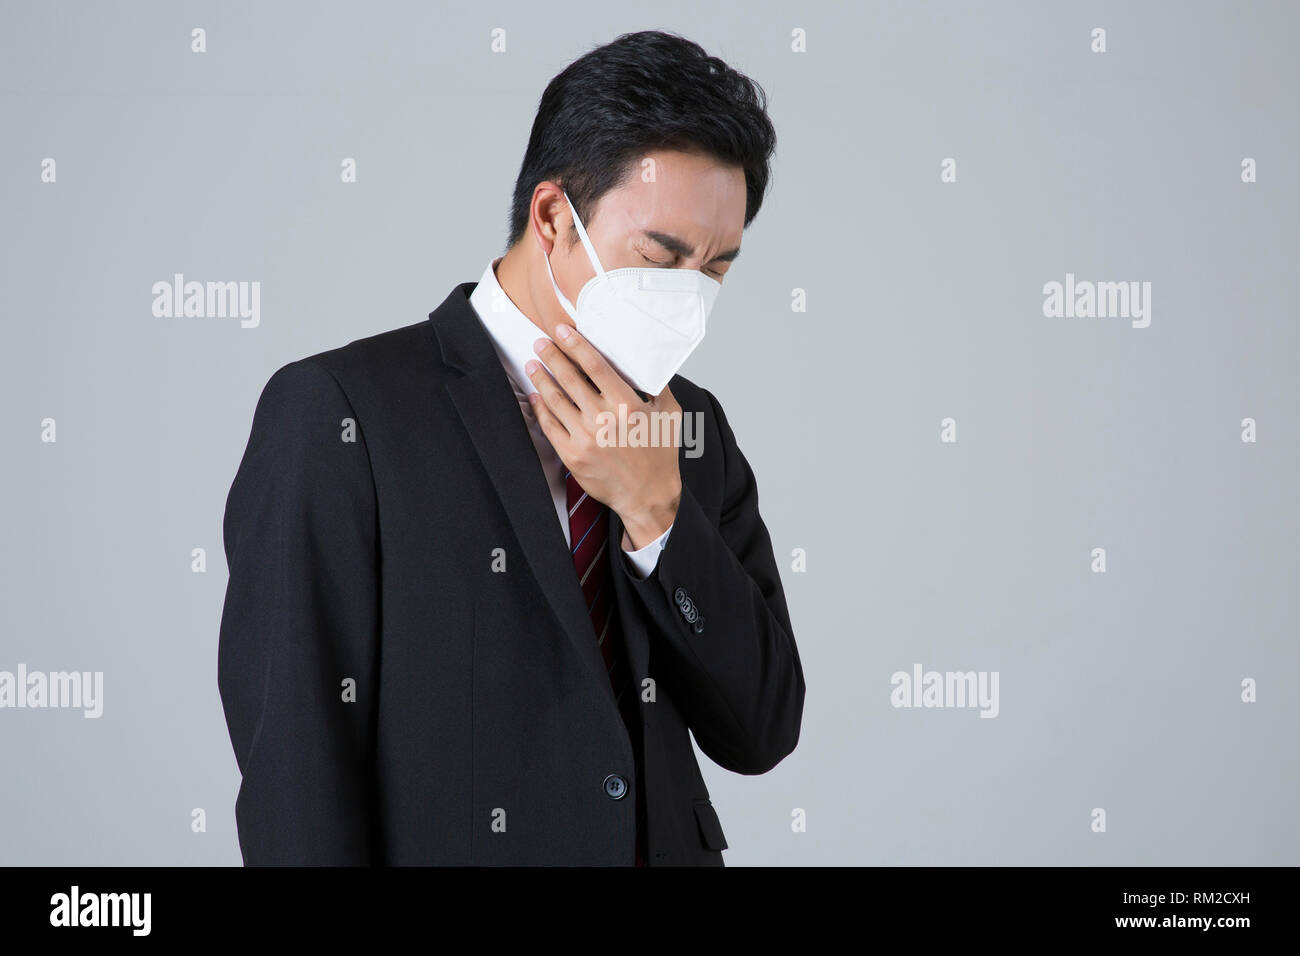 Young businessman concept photo. 144 - Stock Image